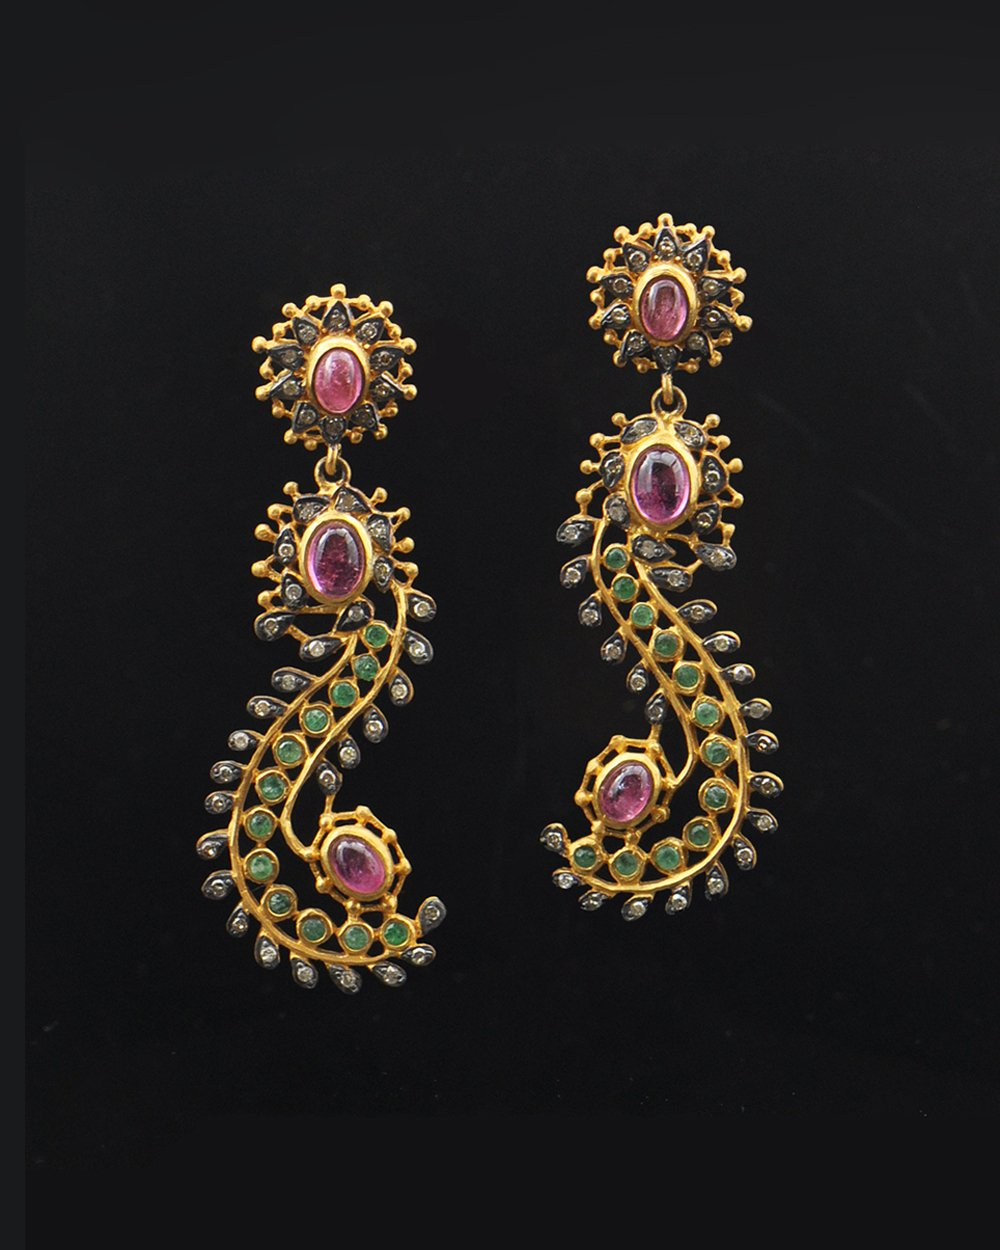 Mystical Diamonds, Emeralds and Tourmaline Earrings